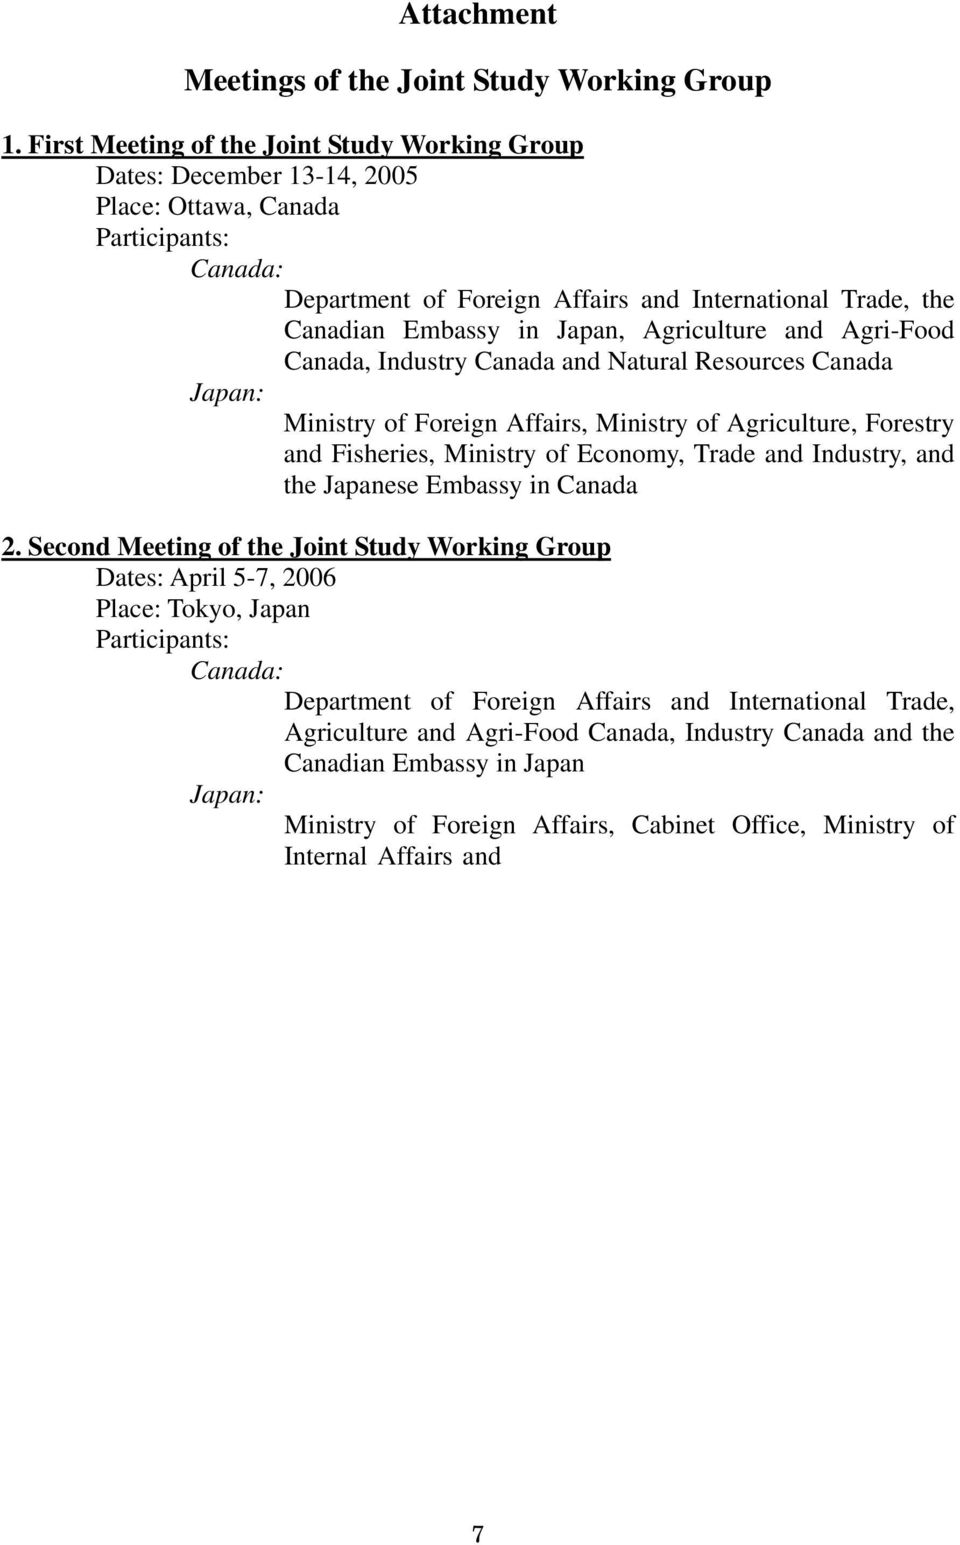 Japan, Agriculture and Agri-Food Canada, Industry Canada and Natural Resources Canada Japan: Ministry of Foreign Affairs, Ministry of Agriculture, Forestry and Fisheries, Ministry of Economy, Trade